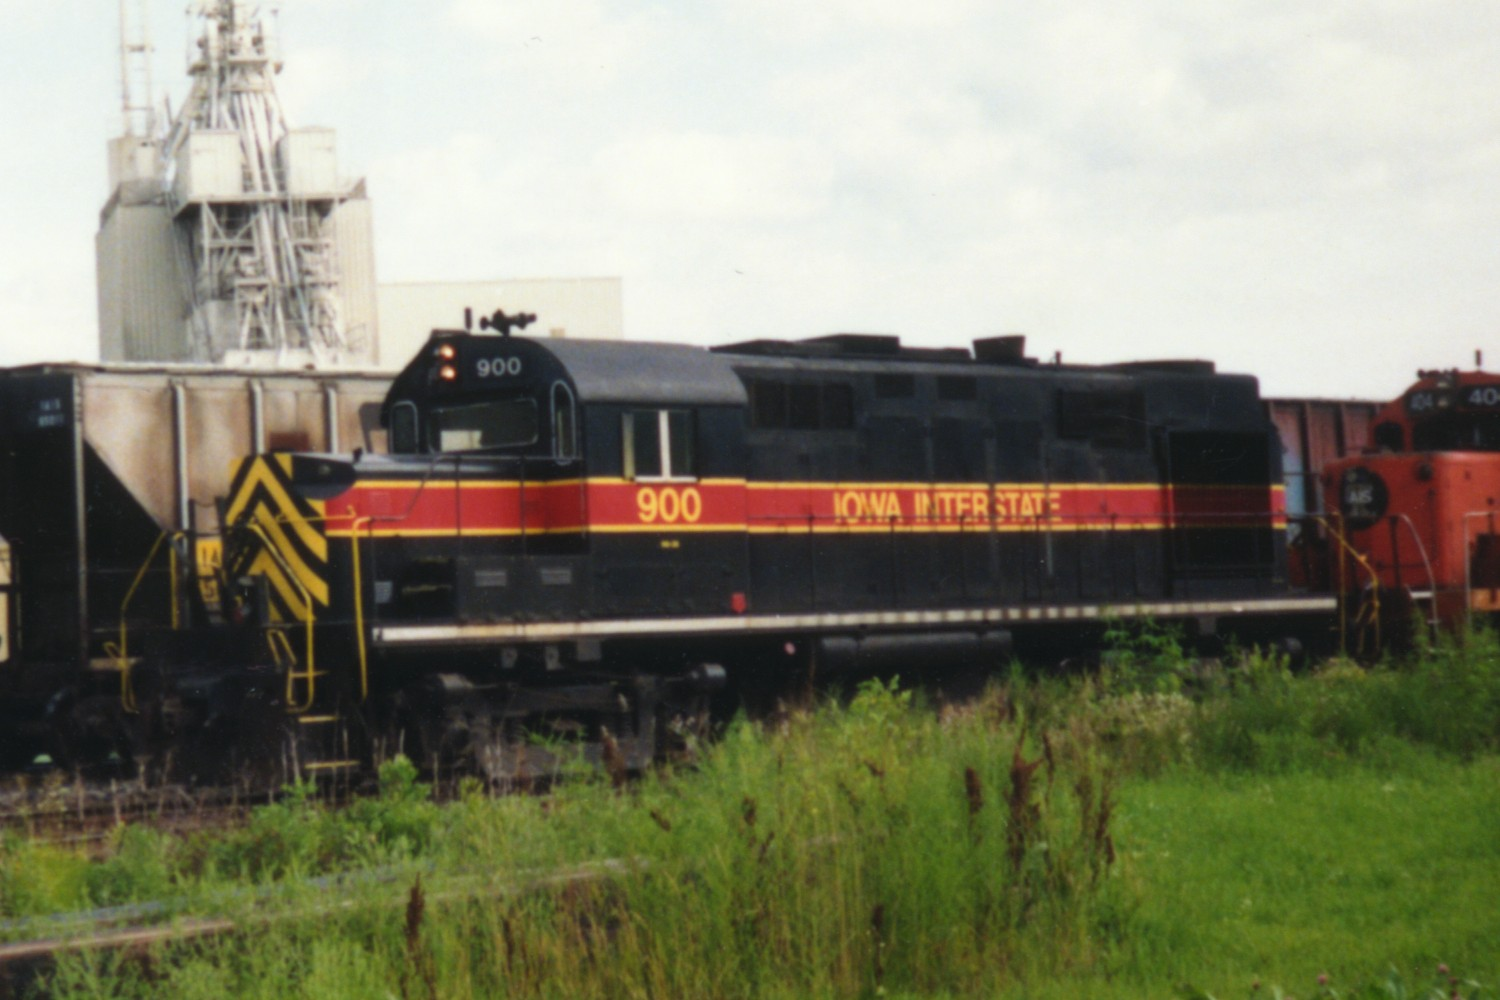 IAIS 900 at Altoona, IA on 01-Aug-1992